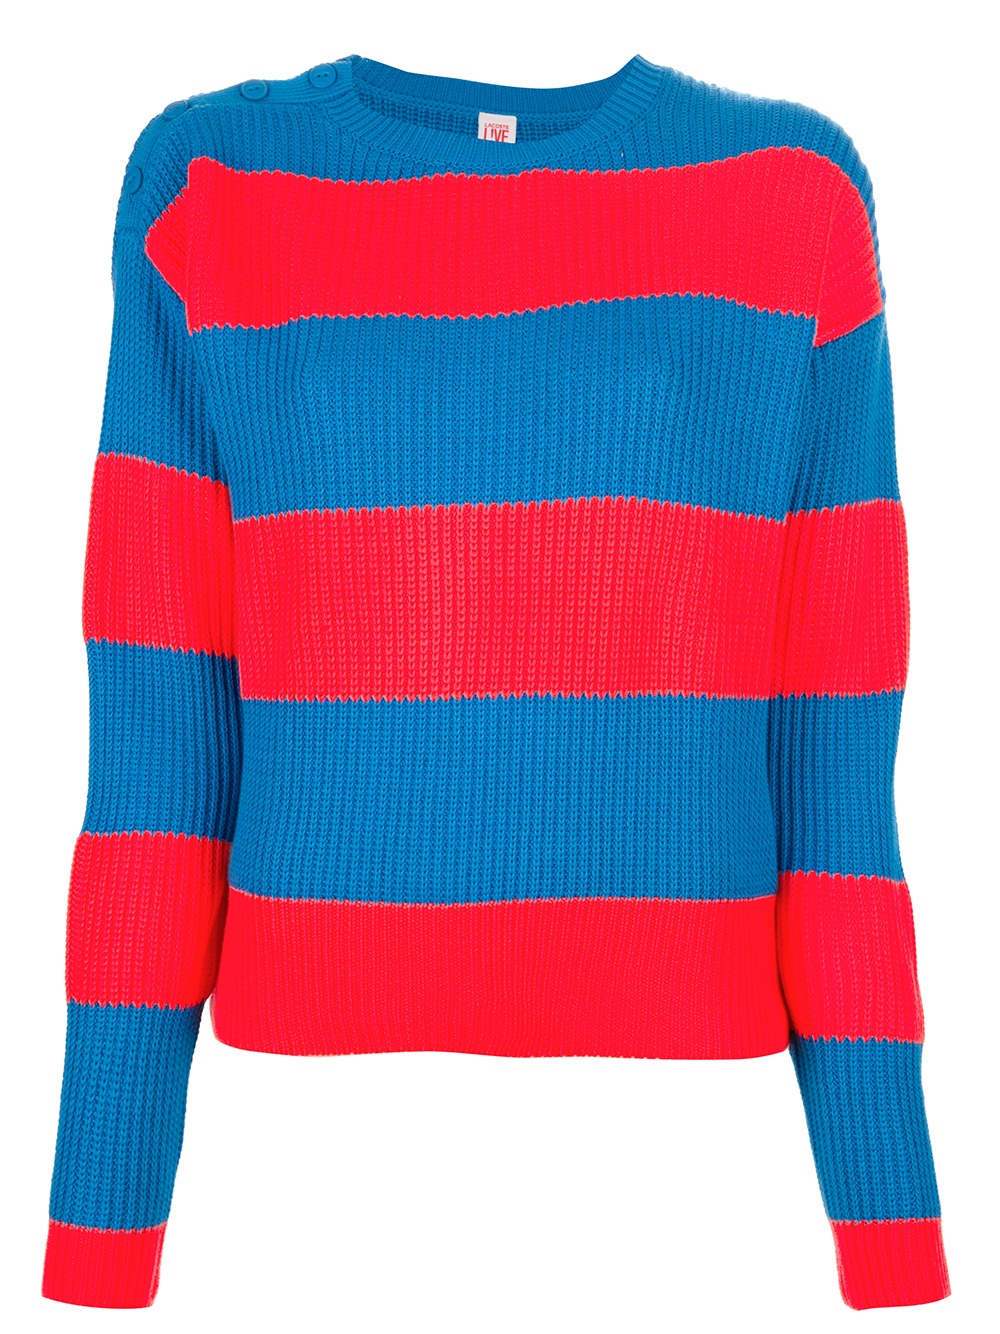 Blue Sweater With Red Stripes Coat Nj